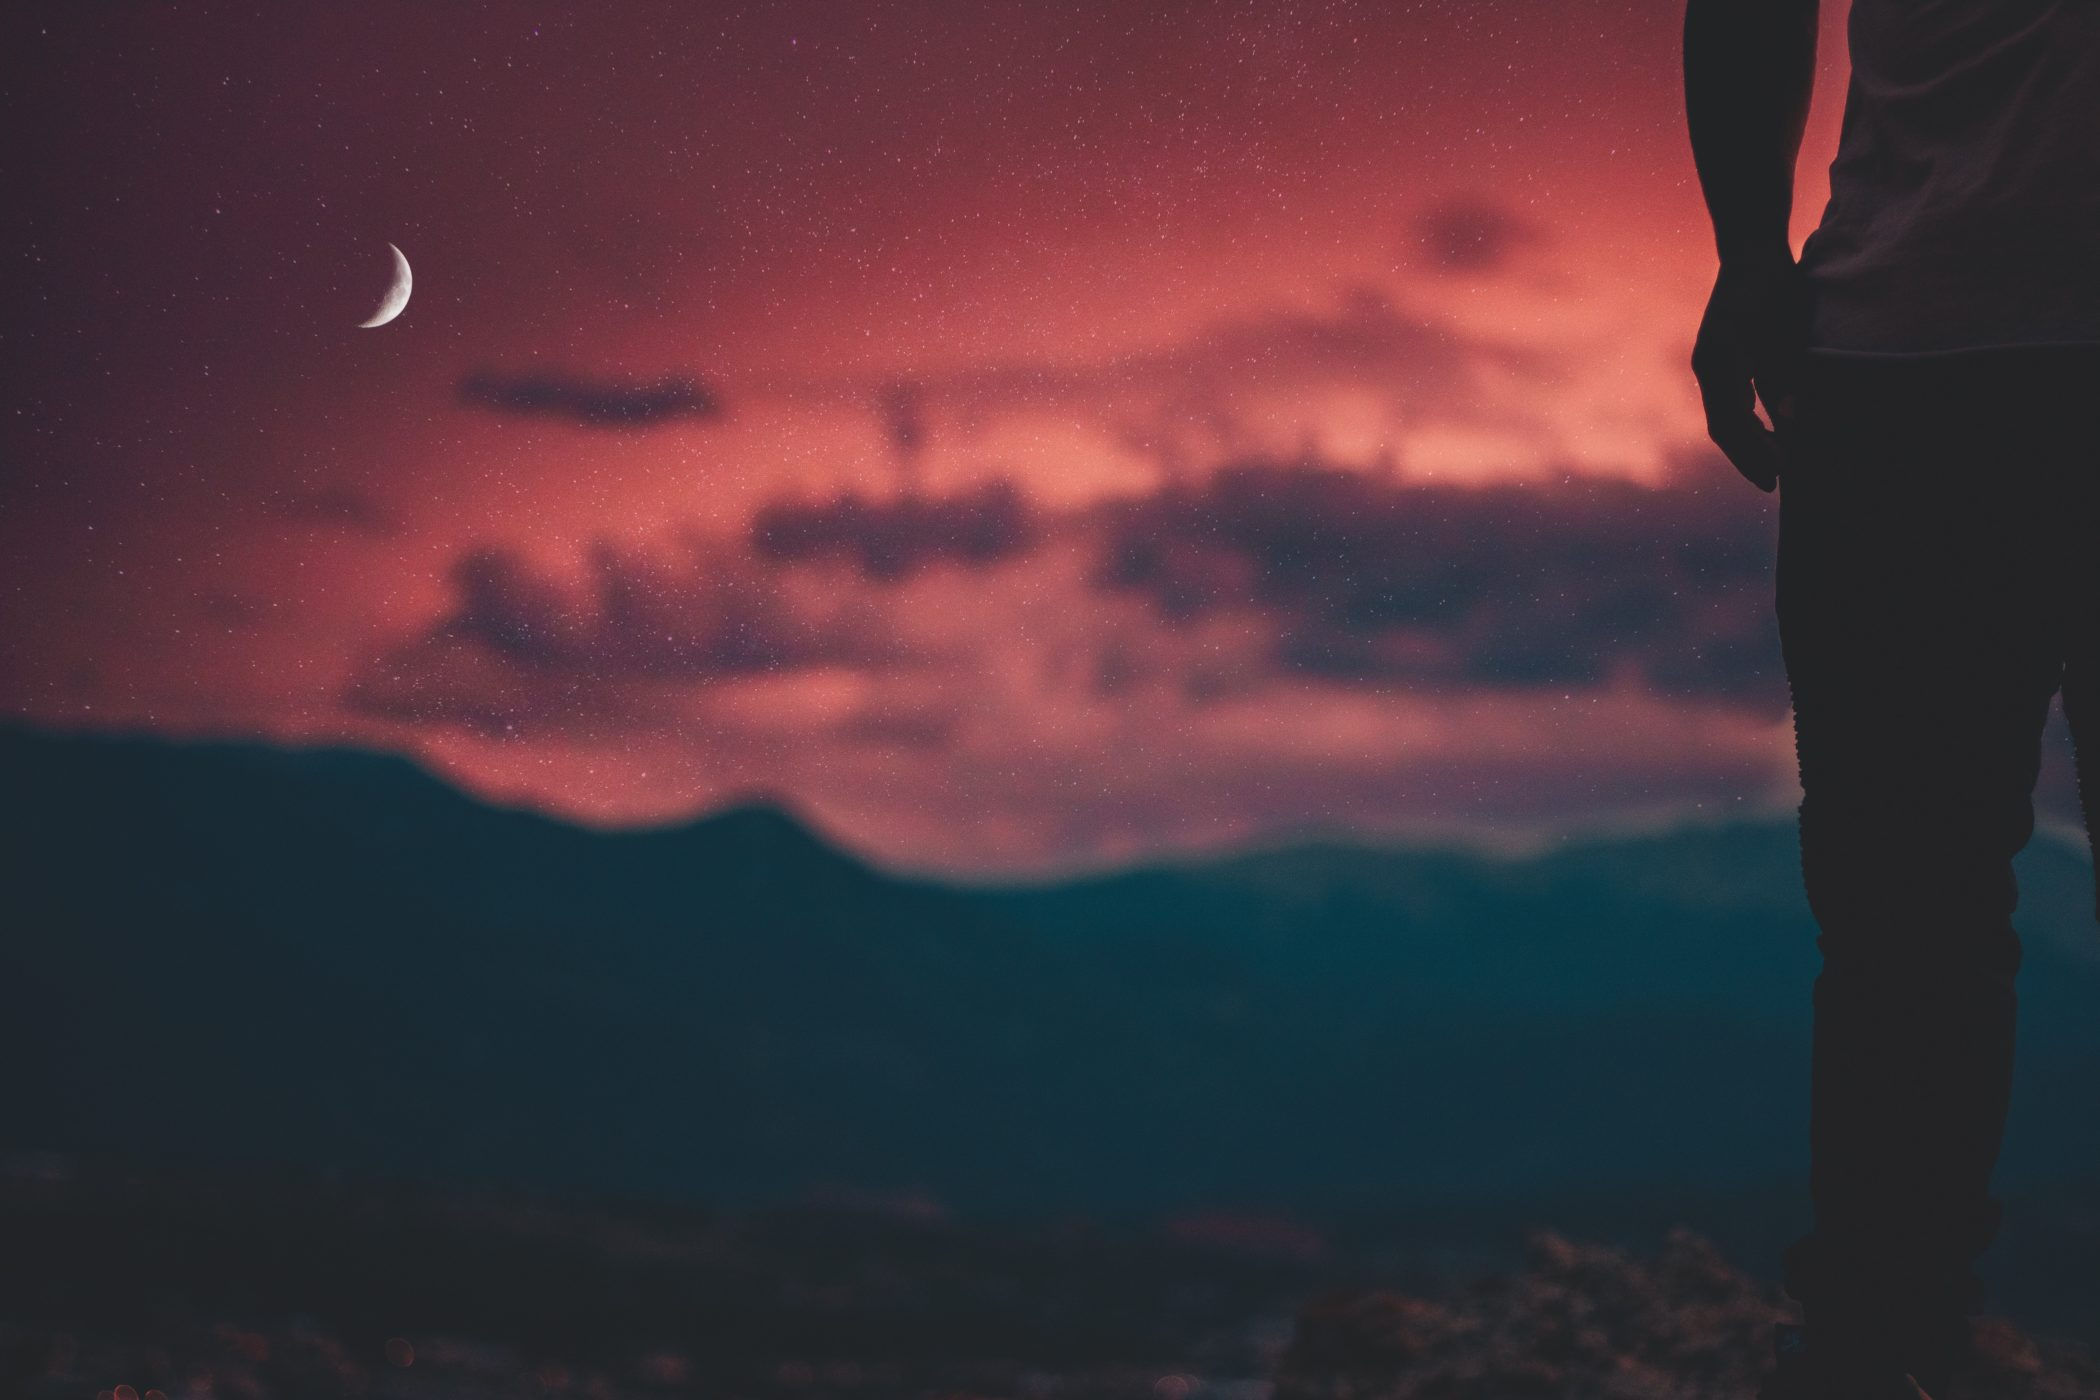 June's Strawberry Moon in Gemini: Meaning and Local Ceremonies - Sunset & Crescent Moon Image